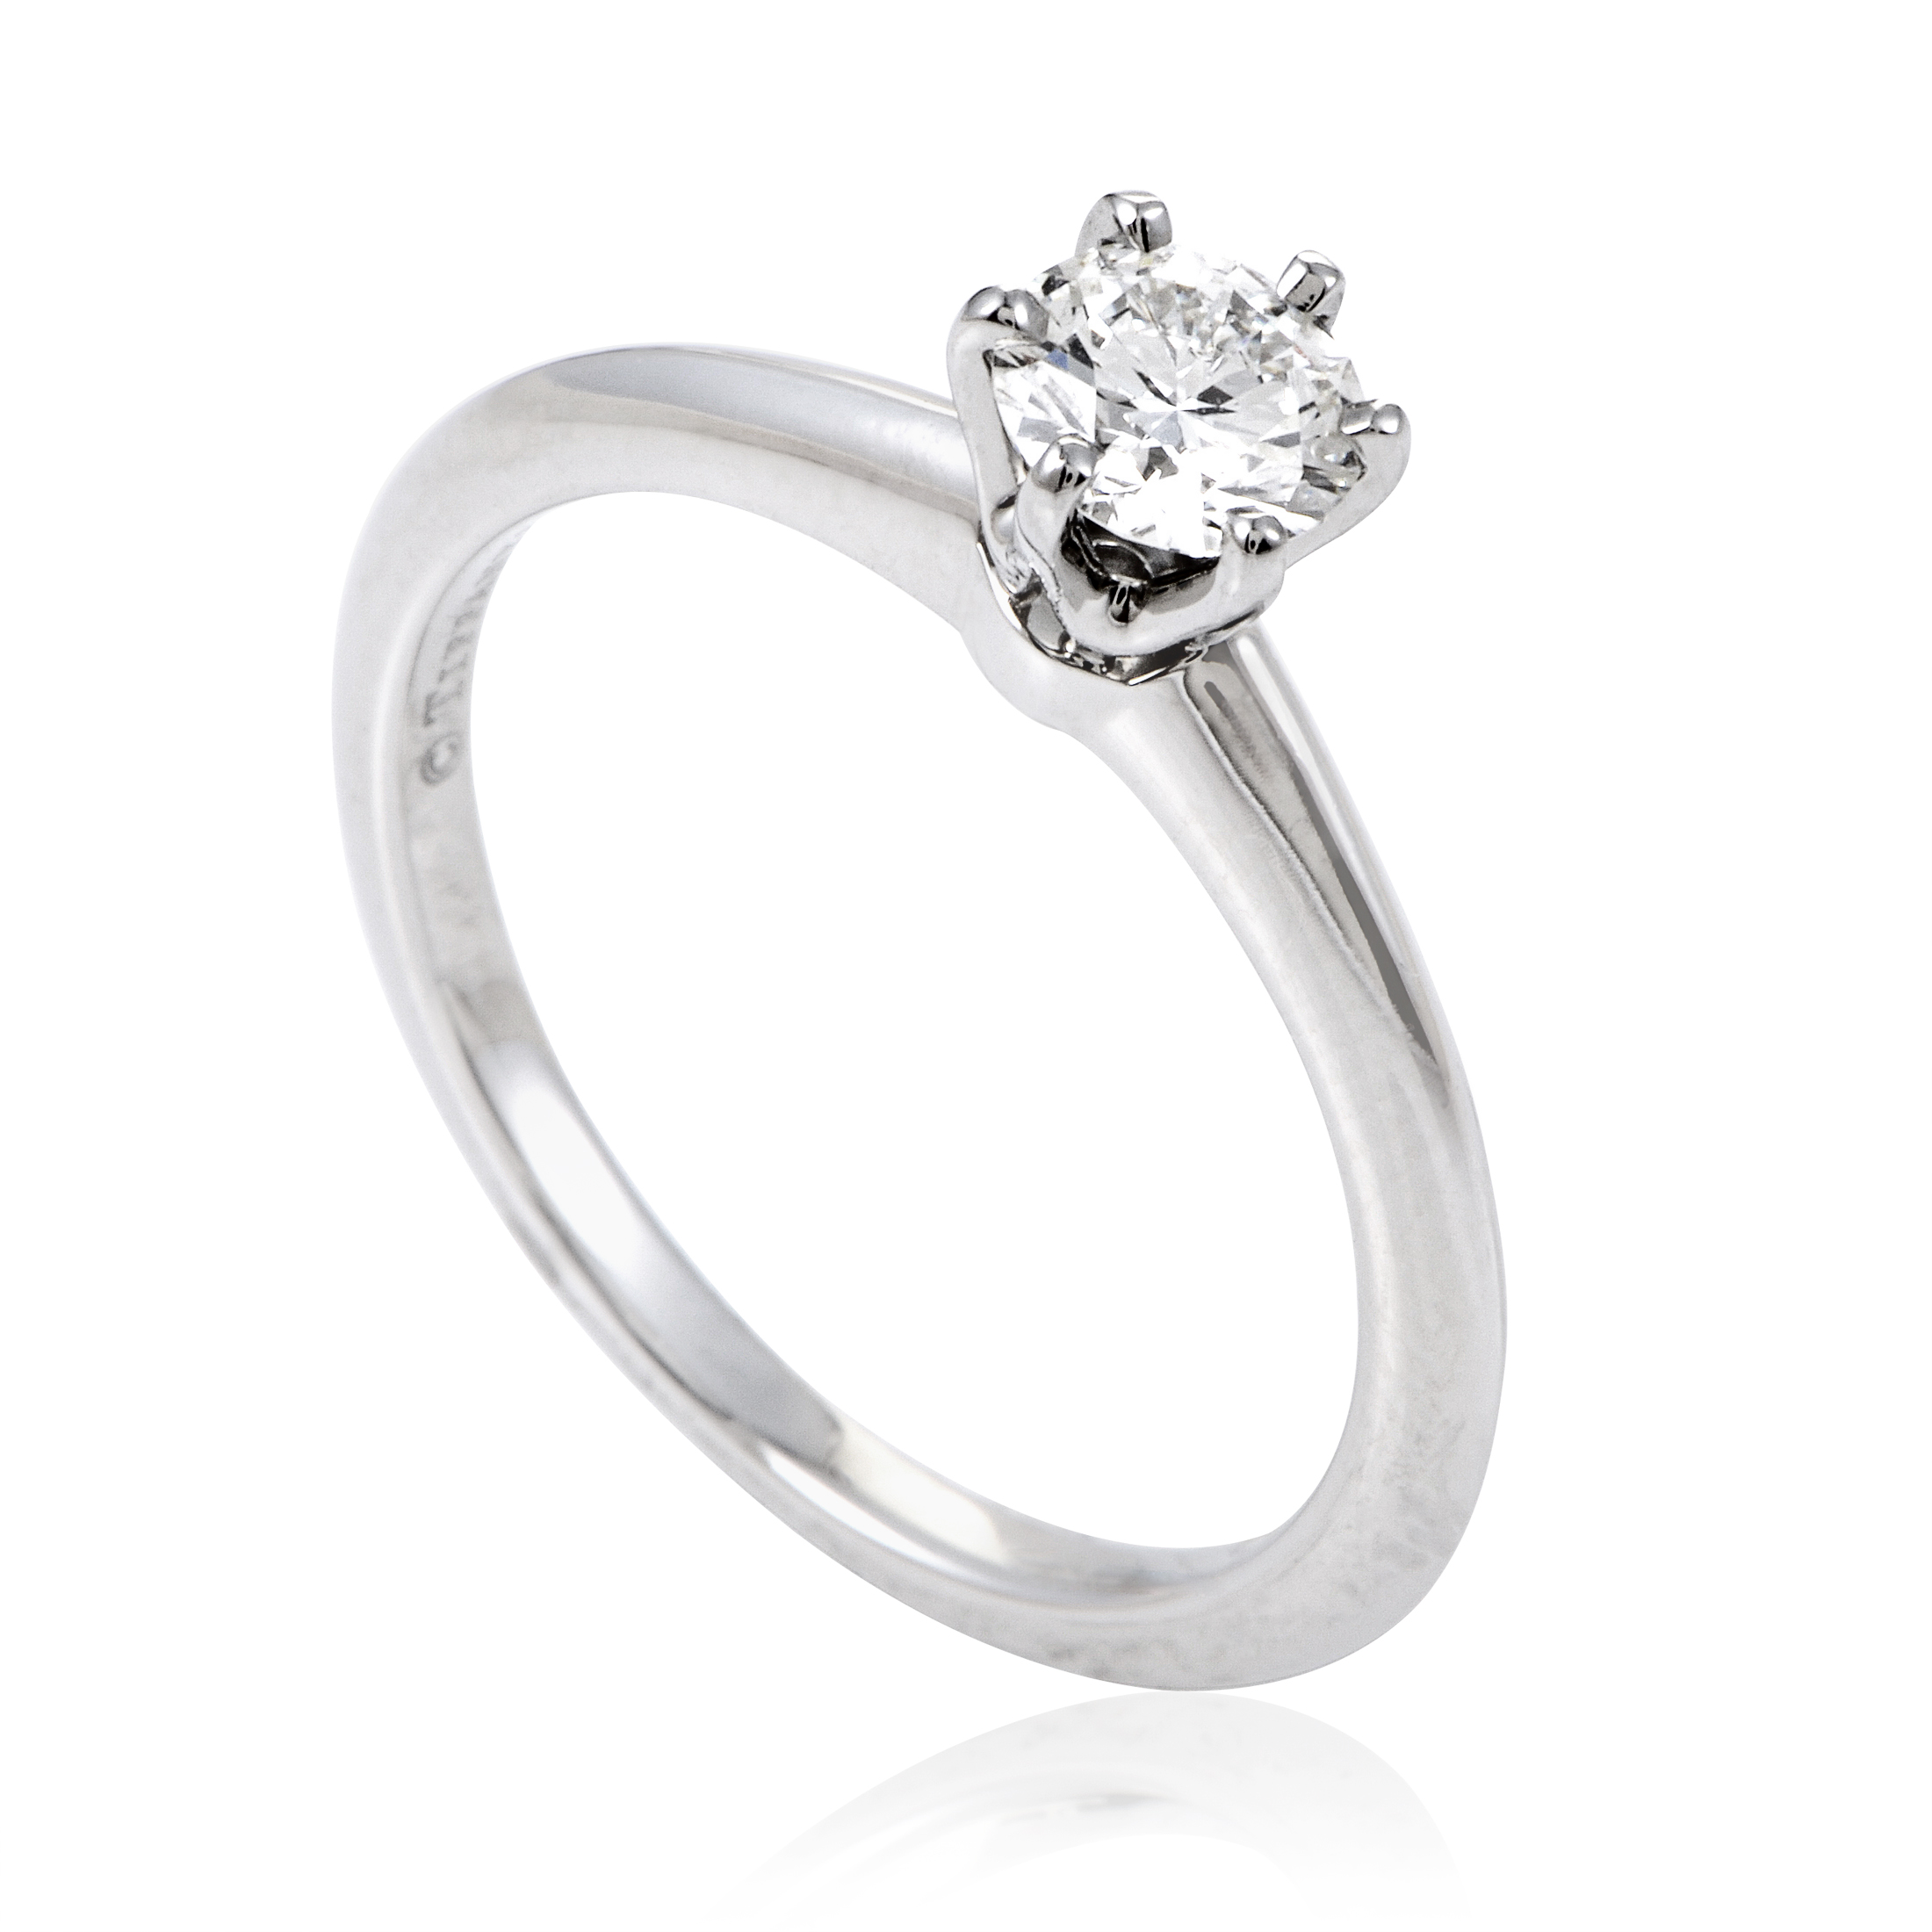 Tiffany & Co. Women's Platinum .43ct Diamond Solitaire Engagement Ring